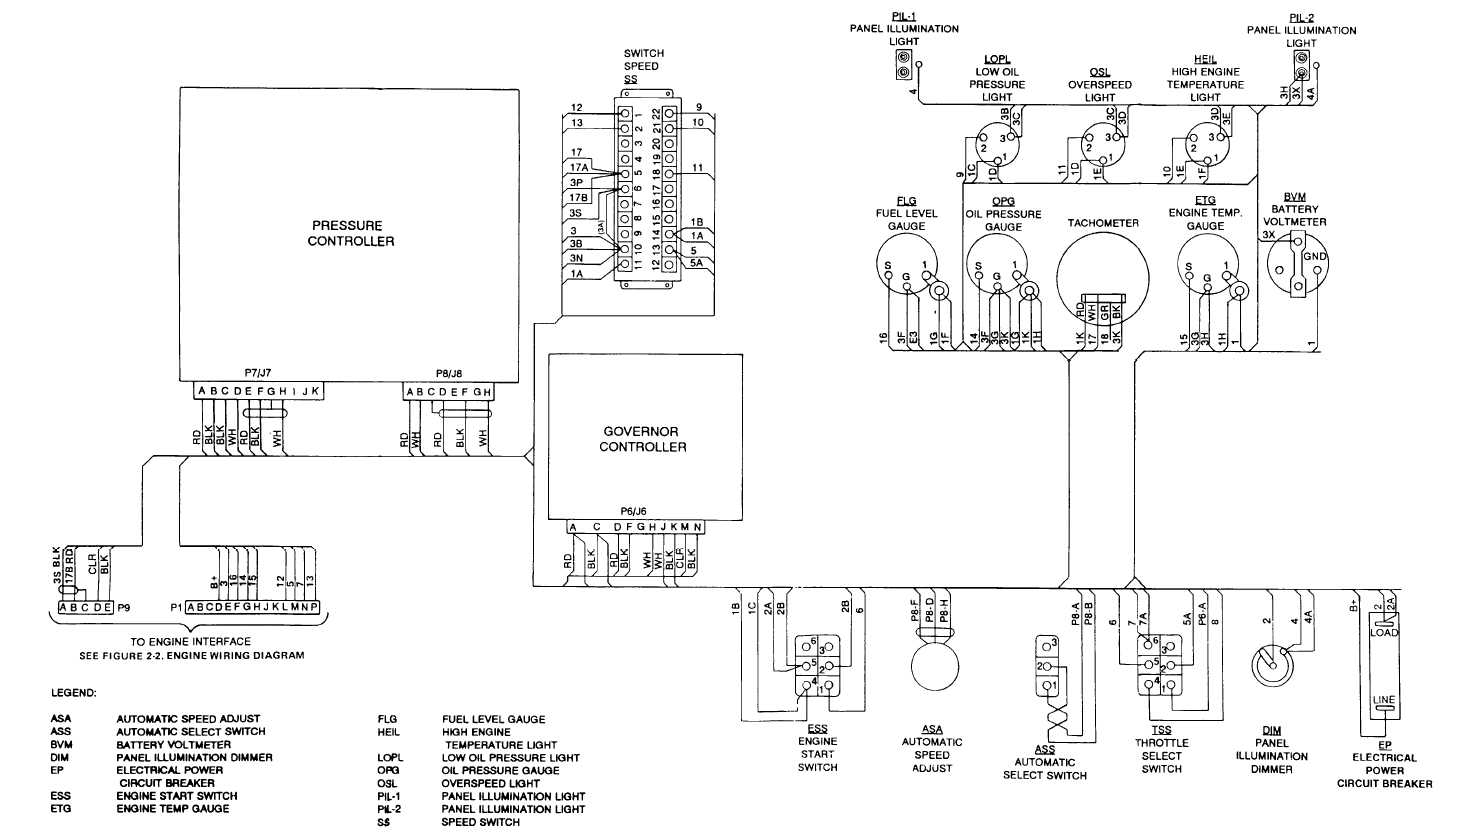 Submersible Pump Wiring Diagram Pdf: Wiring Diagram Plc Panel - Good Guide Of Wiring Diagram u2022rh:getescorts.pro,Design